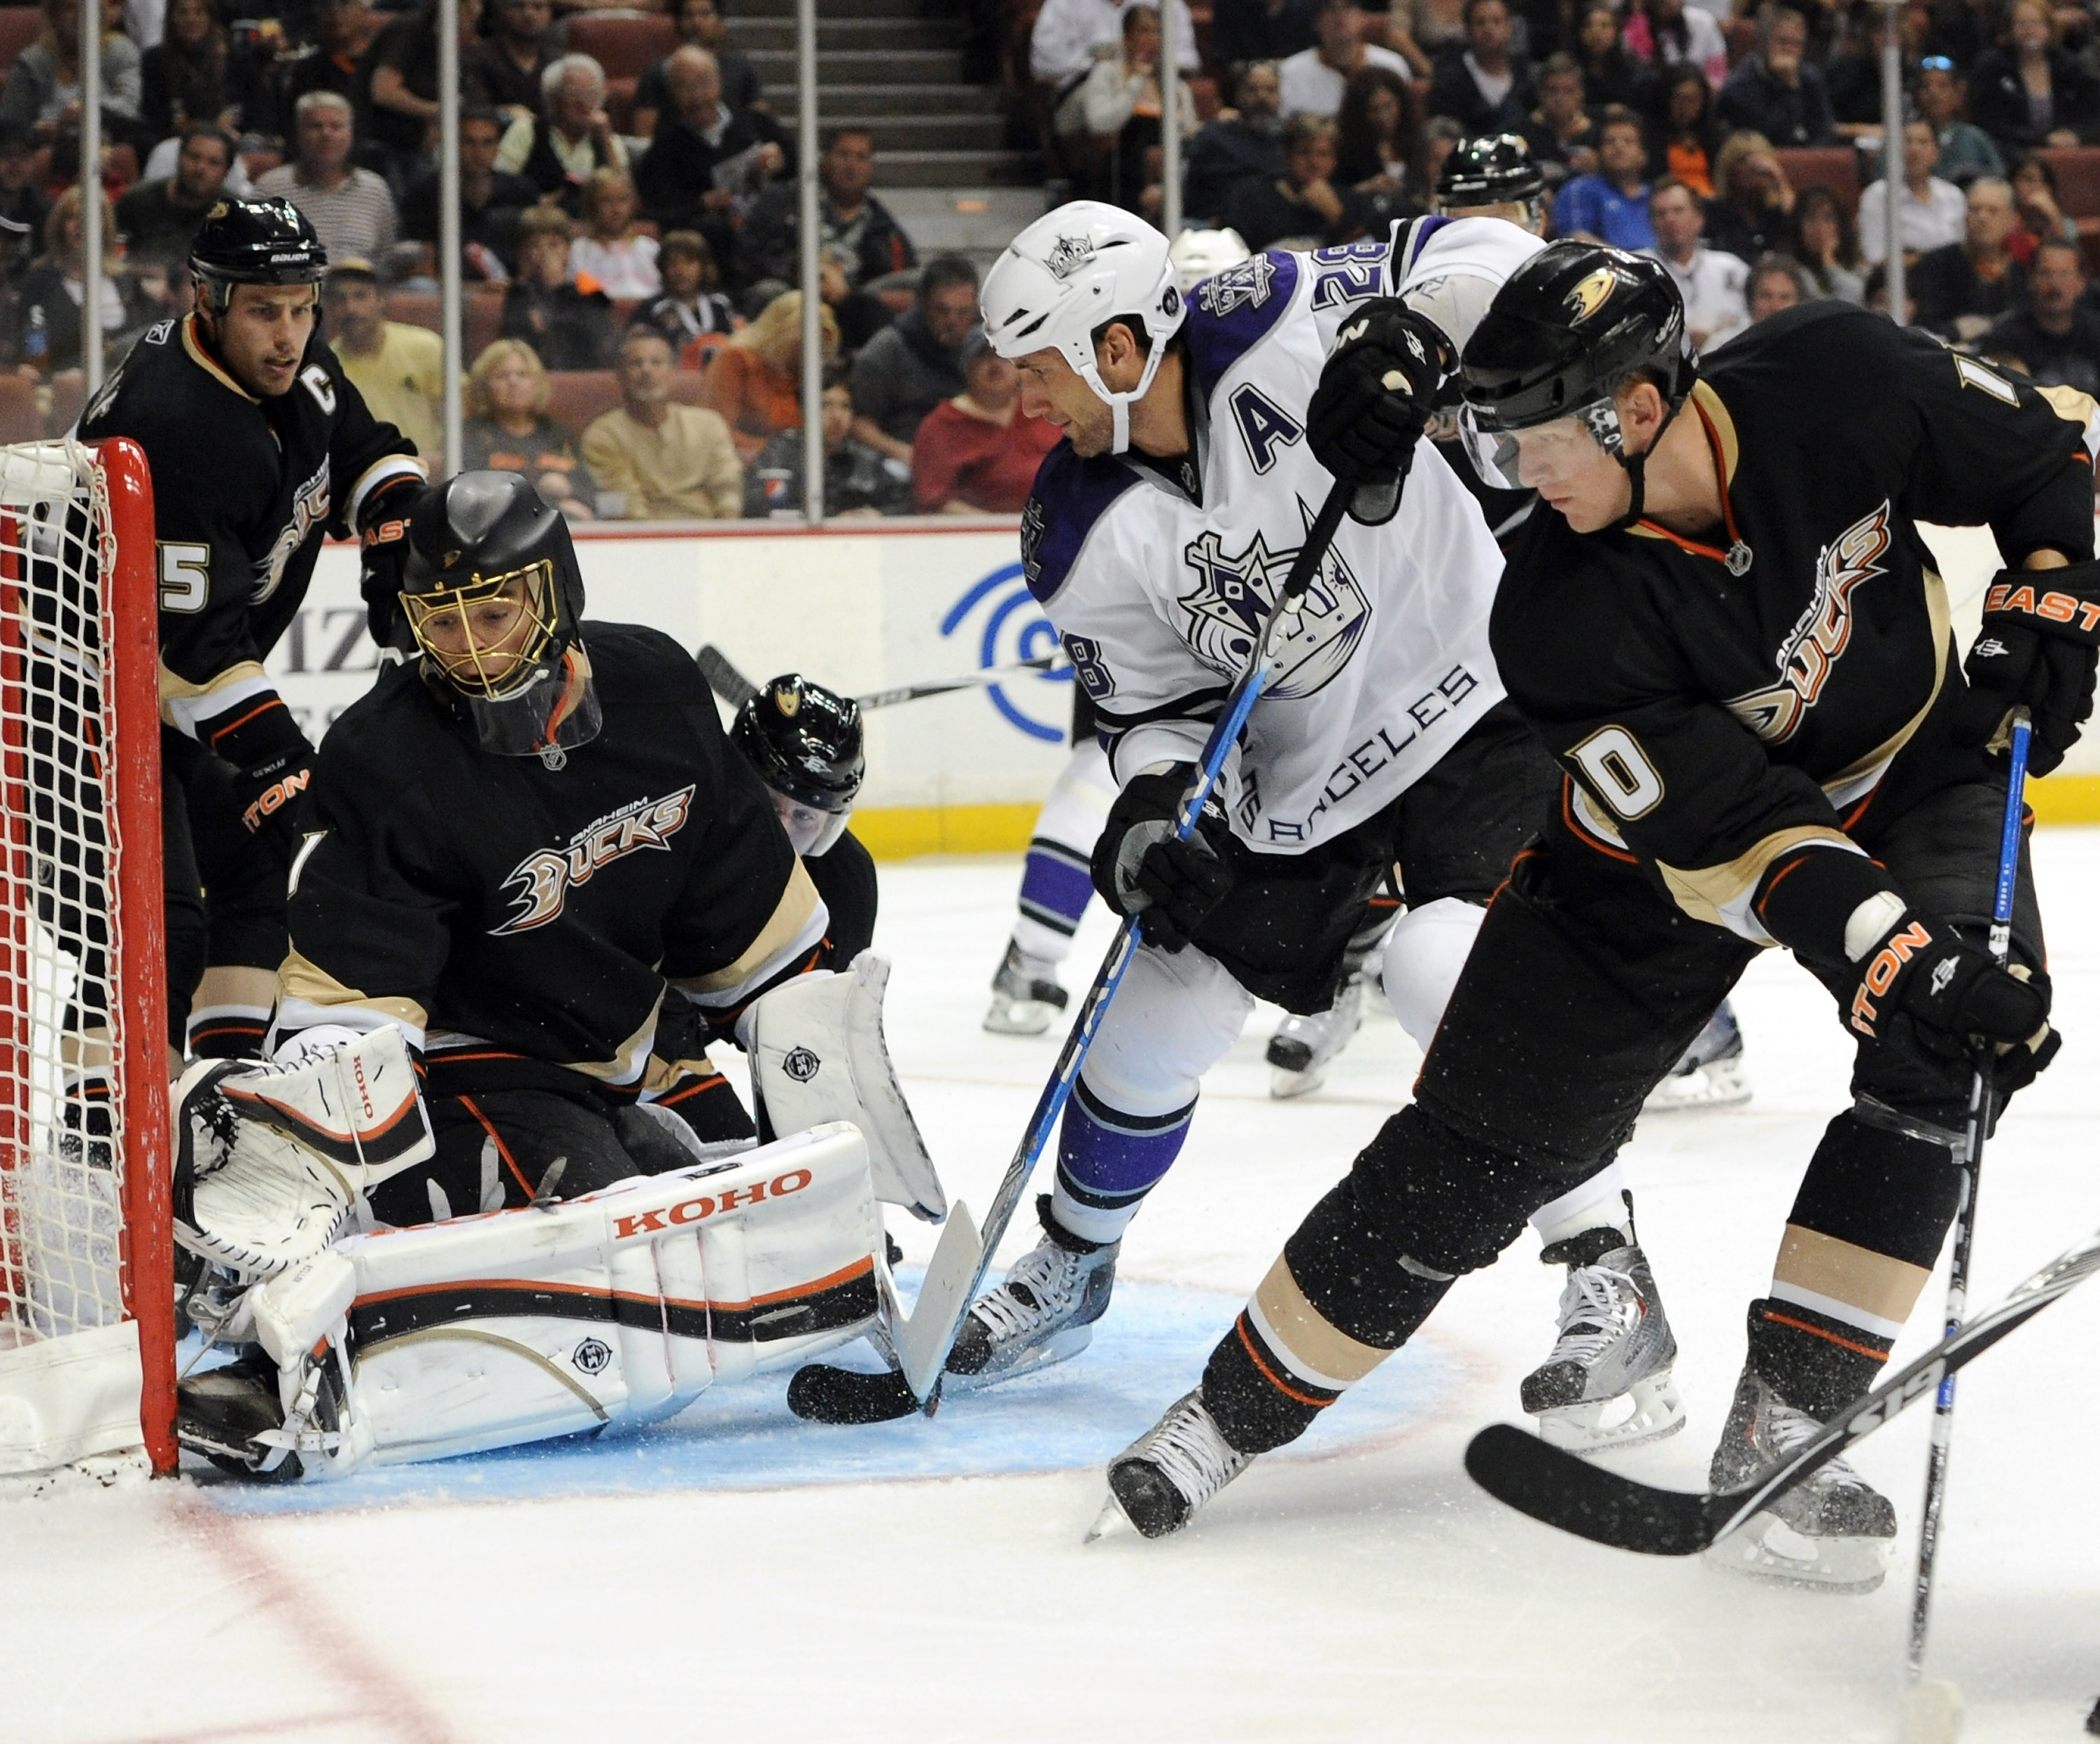 ANAHEIM, CA - OCTOBER 03:  Jonas Hiller #1 of the Anaheim Ducks makes a save on Jarret Stoll #28 of the Los Angeles Kings as Corey Perry #10 and Ryan Getzlaf #15 look for a rebound at Honda Center on October 3, 2010 in Anaheim, California.  (Photo by Harr